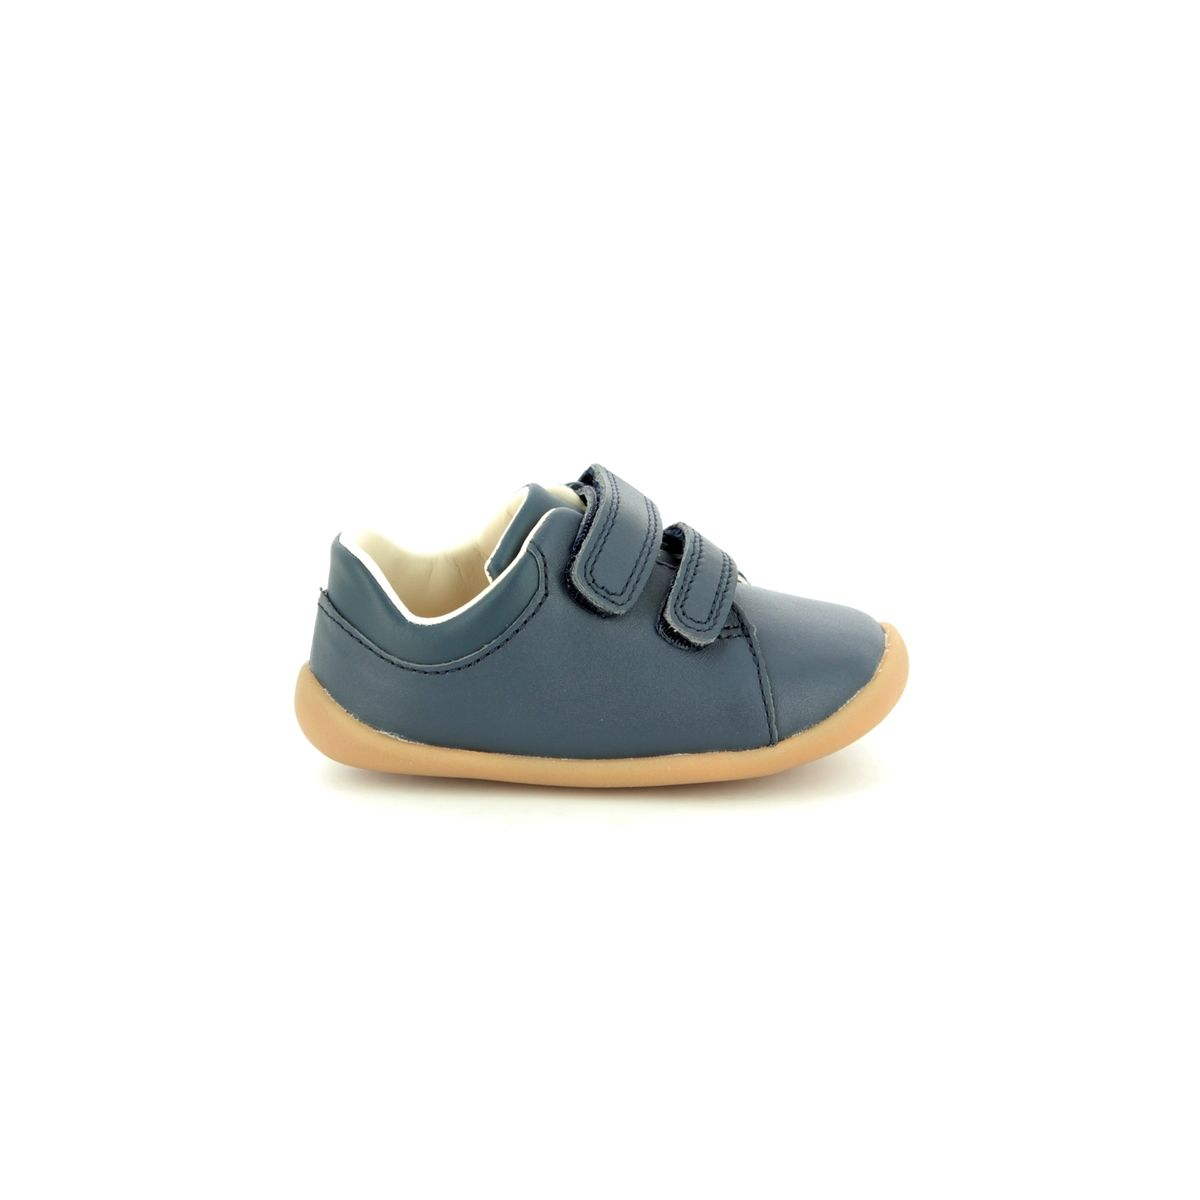 207a3b8863eda Clarks First Shoes - Navy leather - 422867G ROAMER CRAFT T